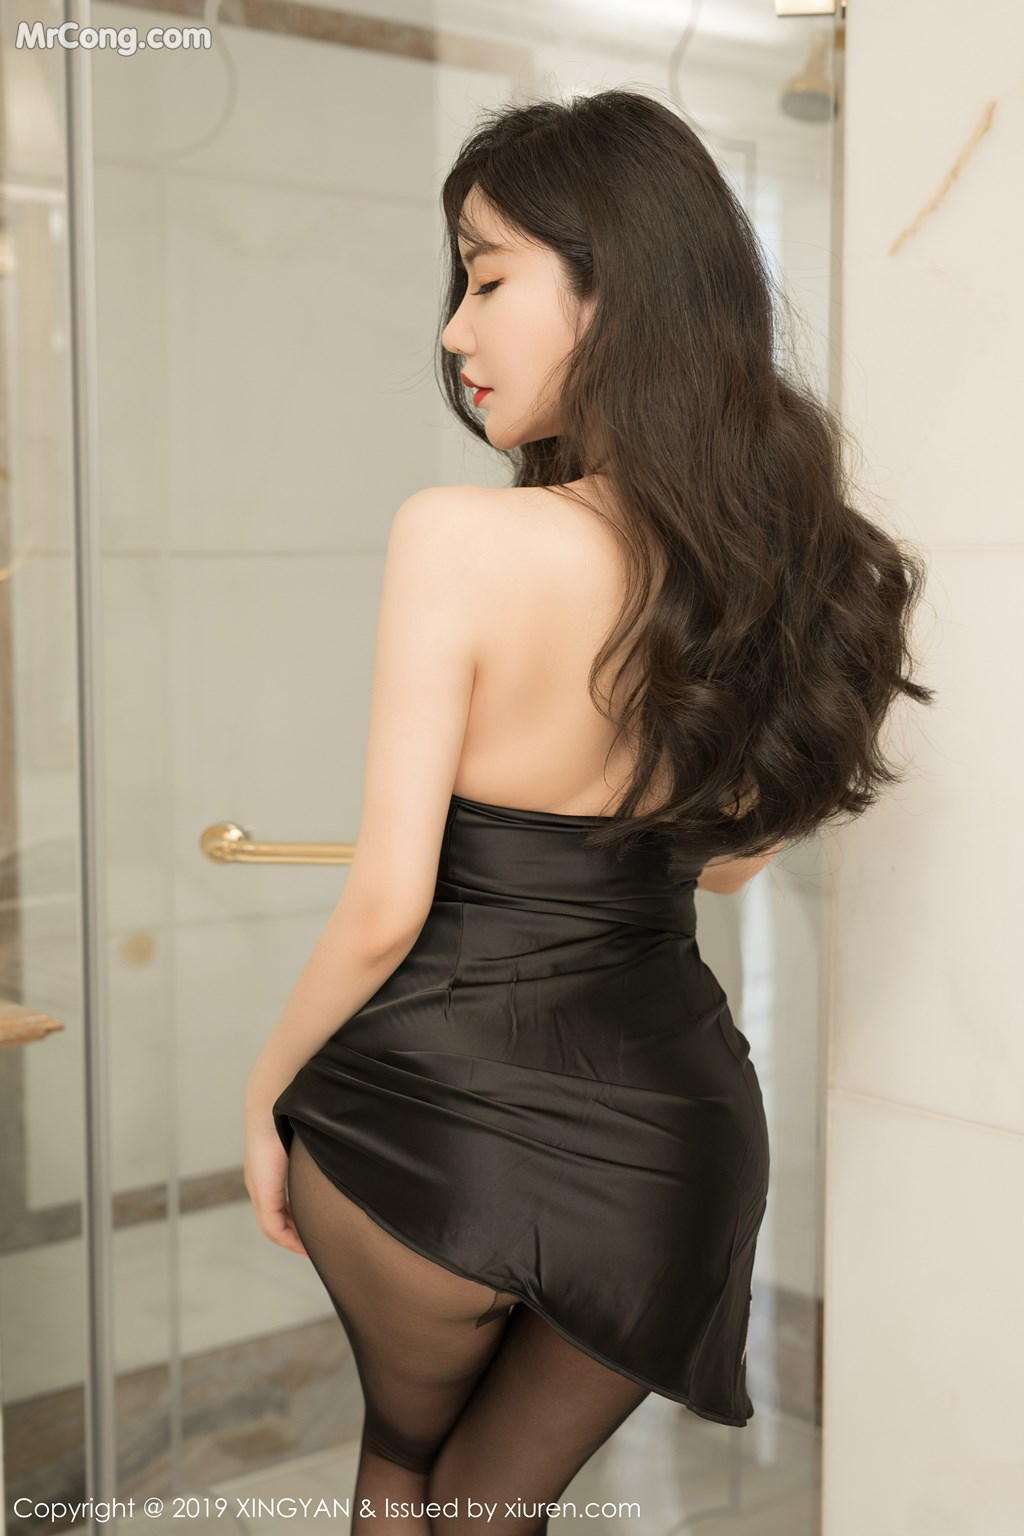 Image XingYan-Vol.123-MrCong.com-028 in post XingYan Vol.123: 心妍小公主 (47 ảnh)